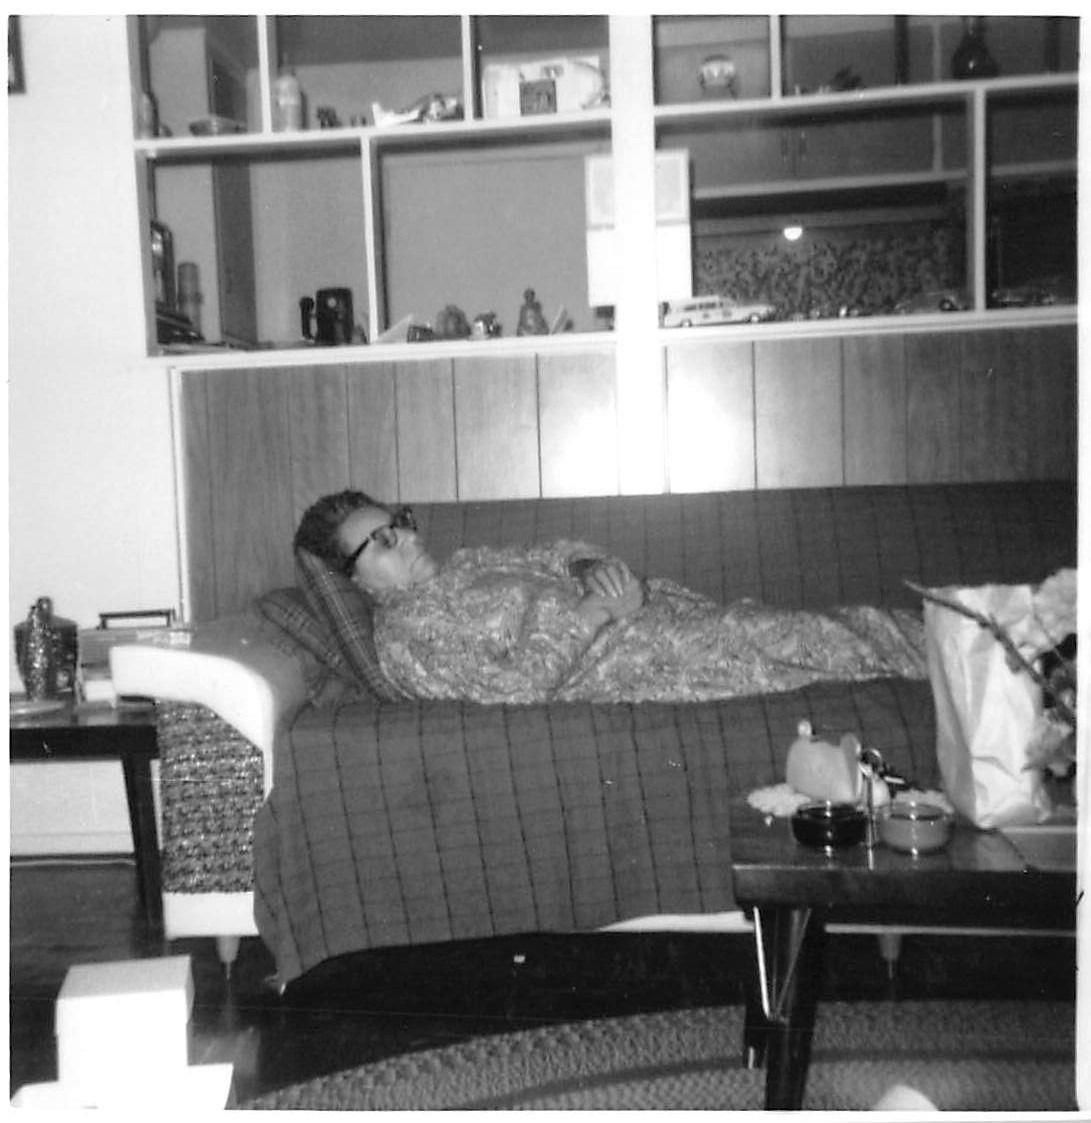 Photograph Snapshot Vintage Black And White Elderly Woman Sleeping Couch  1960'S | EBay